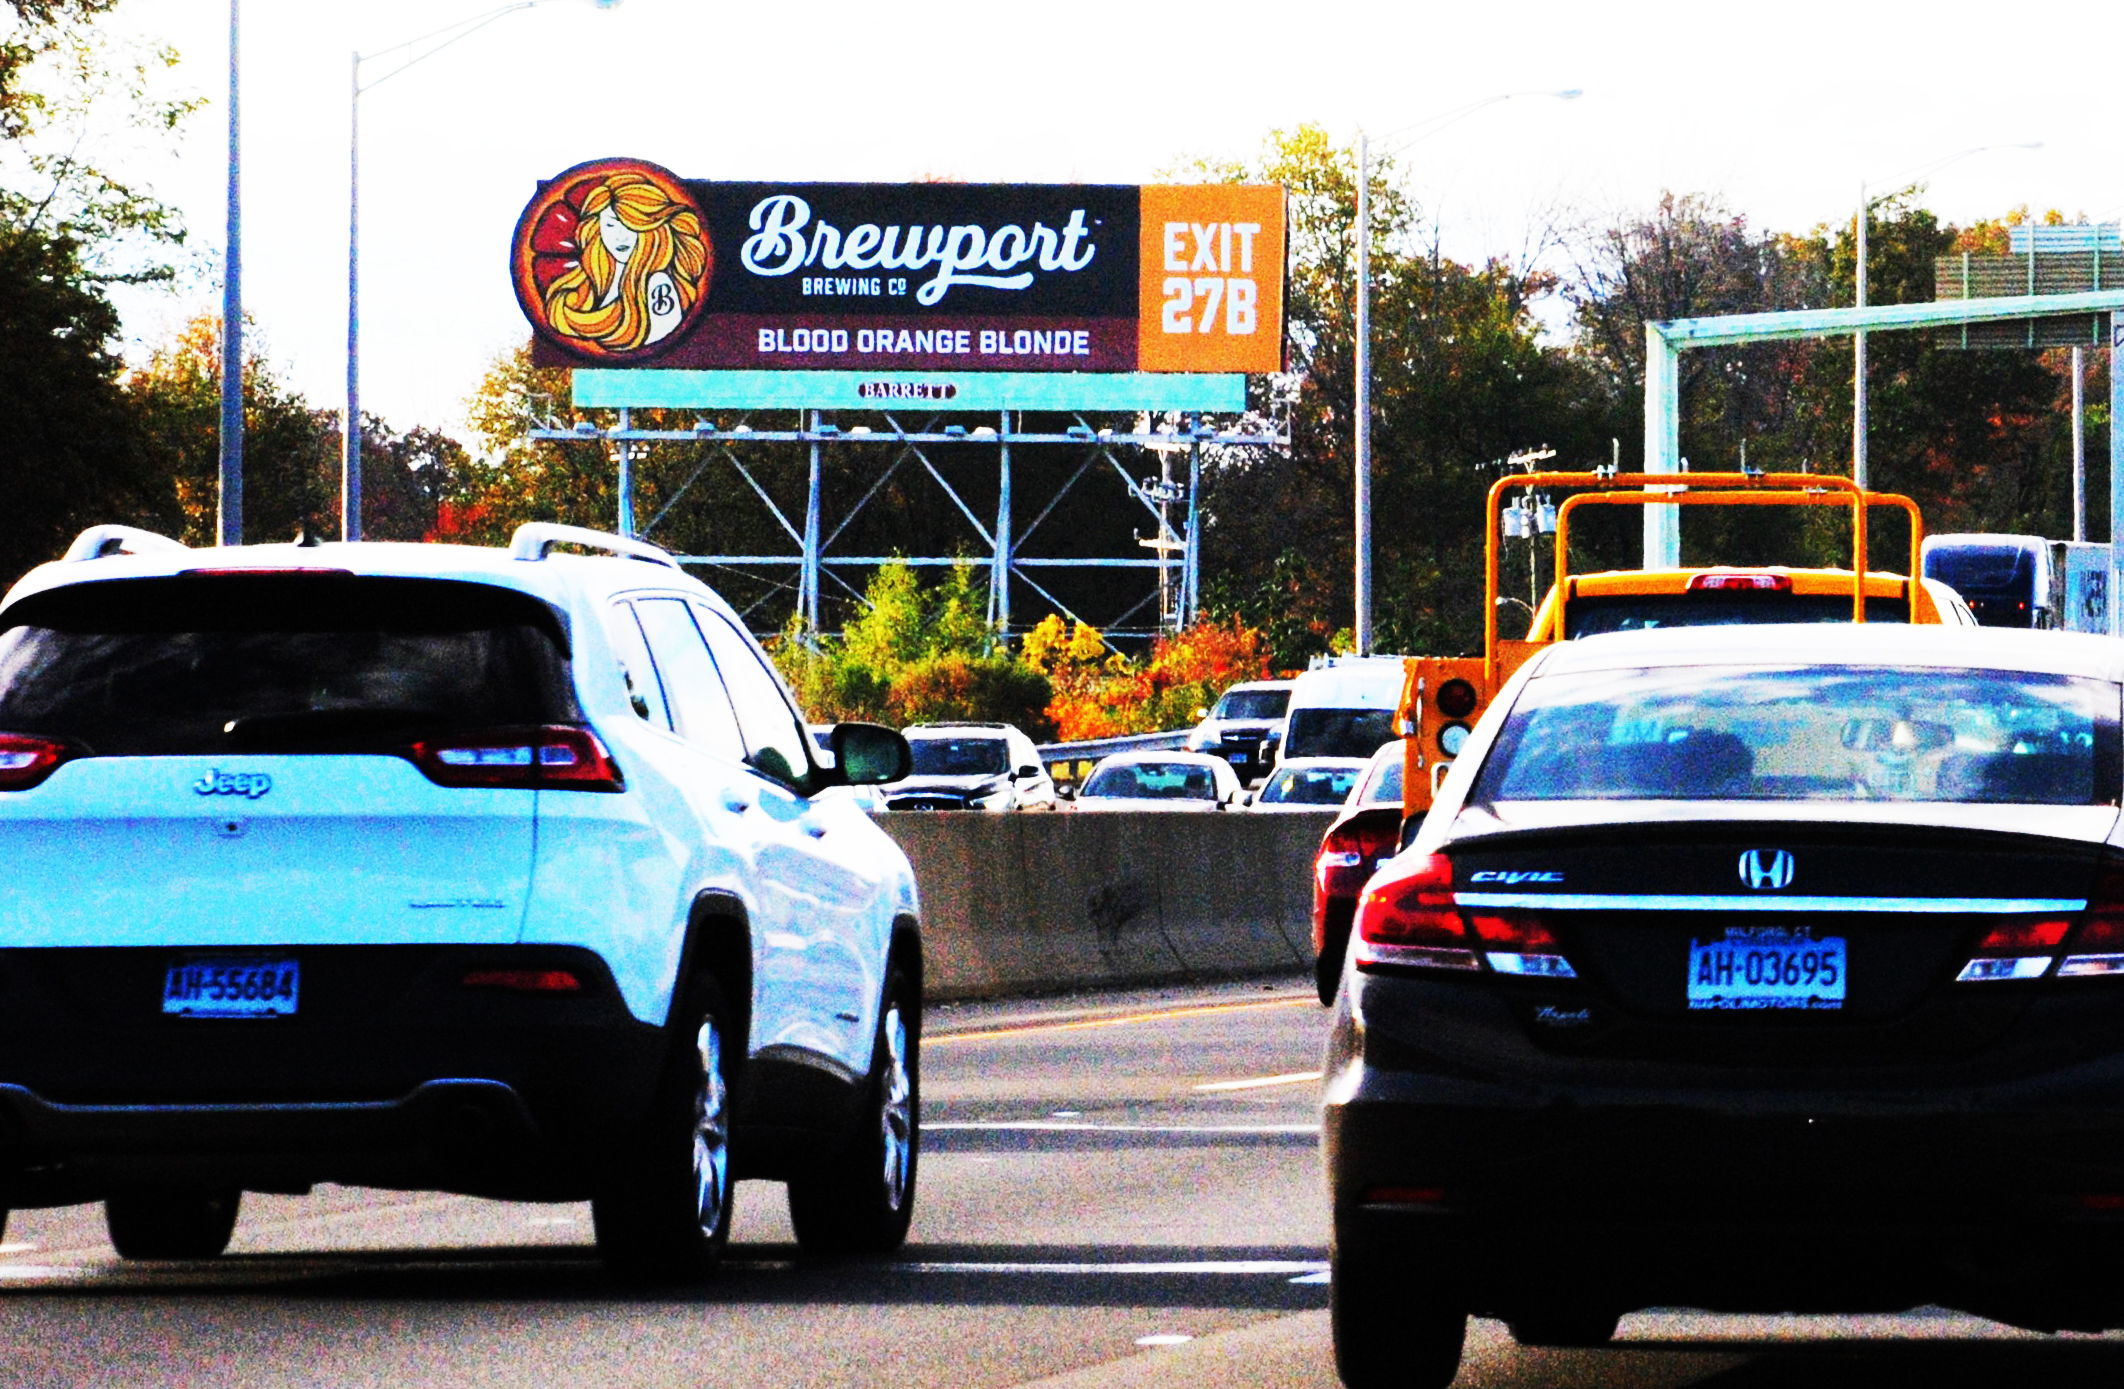 Billboard image of Brewport